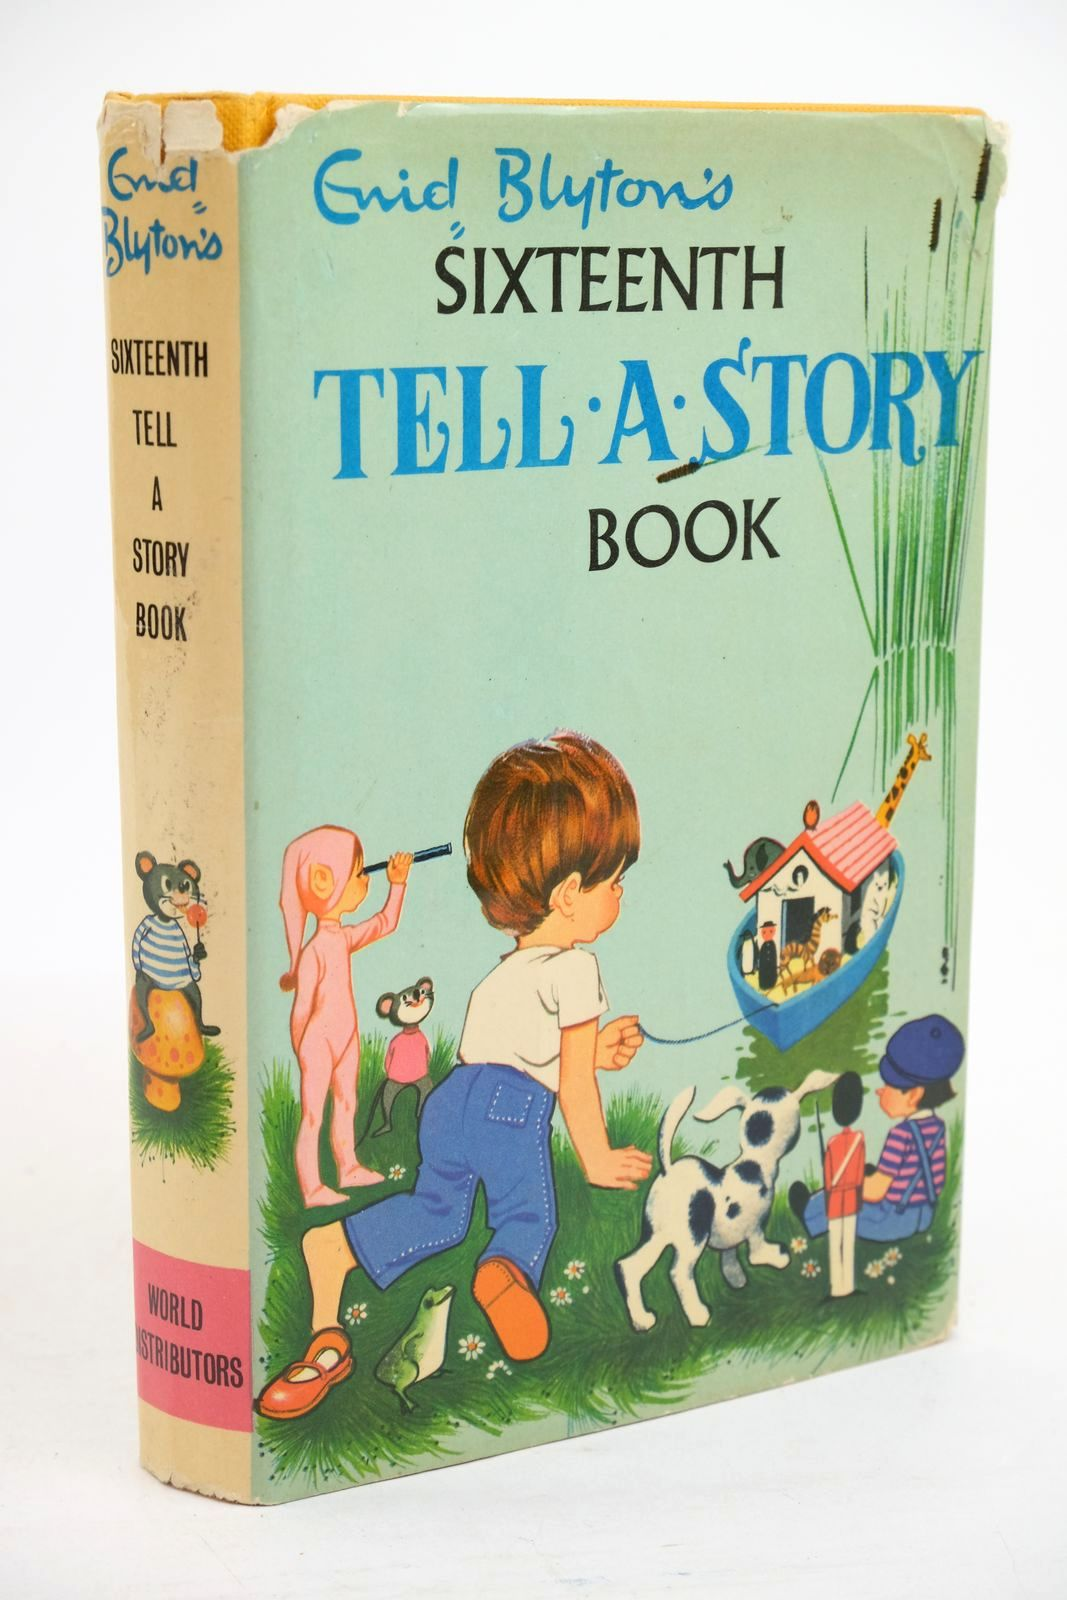 Photo of ENID BLYTON'S SIXTEENTH TELL-A-STORY BOOK written by Blyton, Enid published by World Distributors Ltd. (STOCK CODE: 1321097)  for sale by Stella & Rose's Books